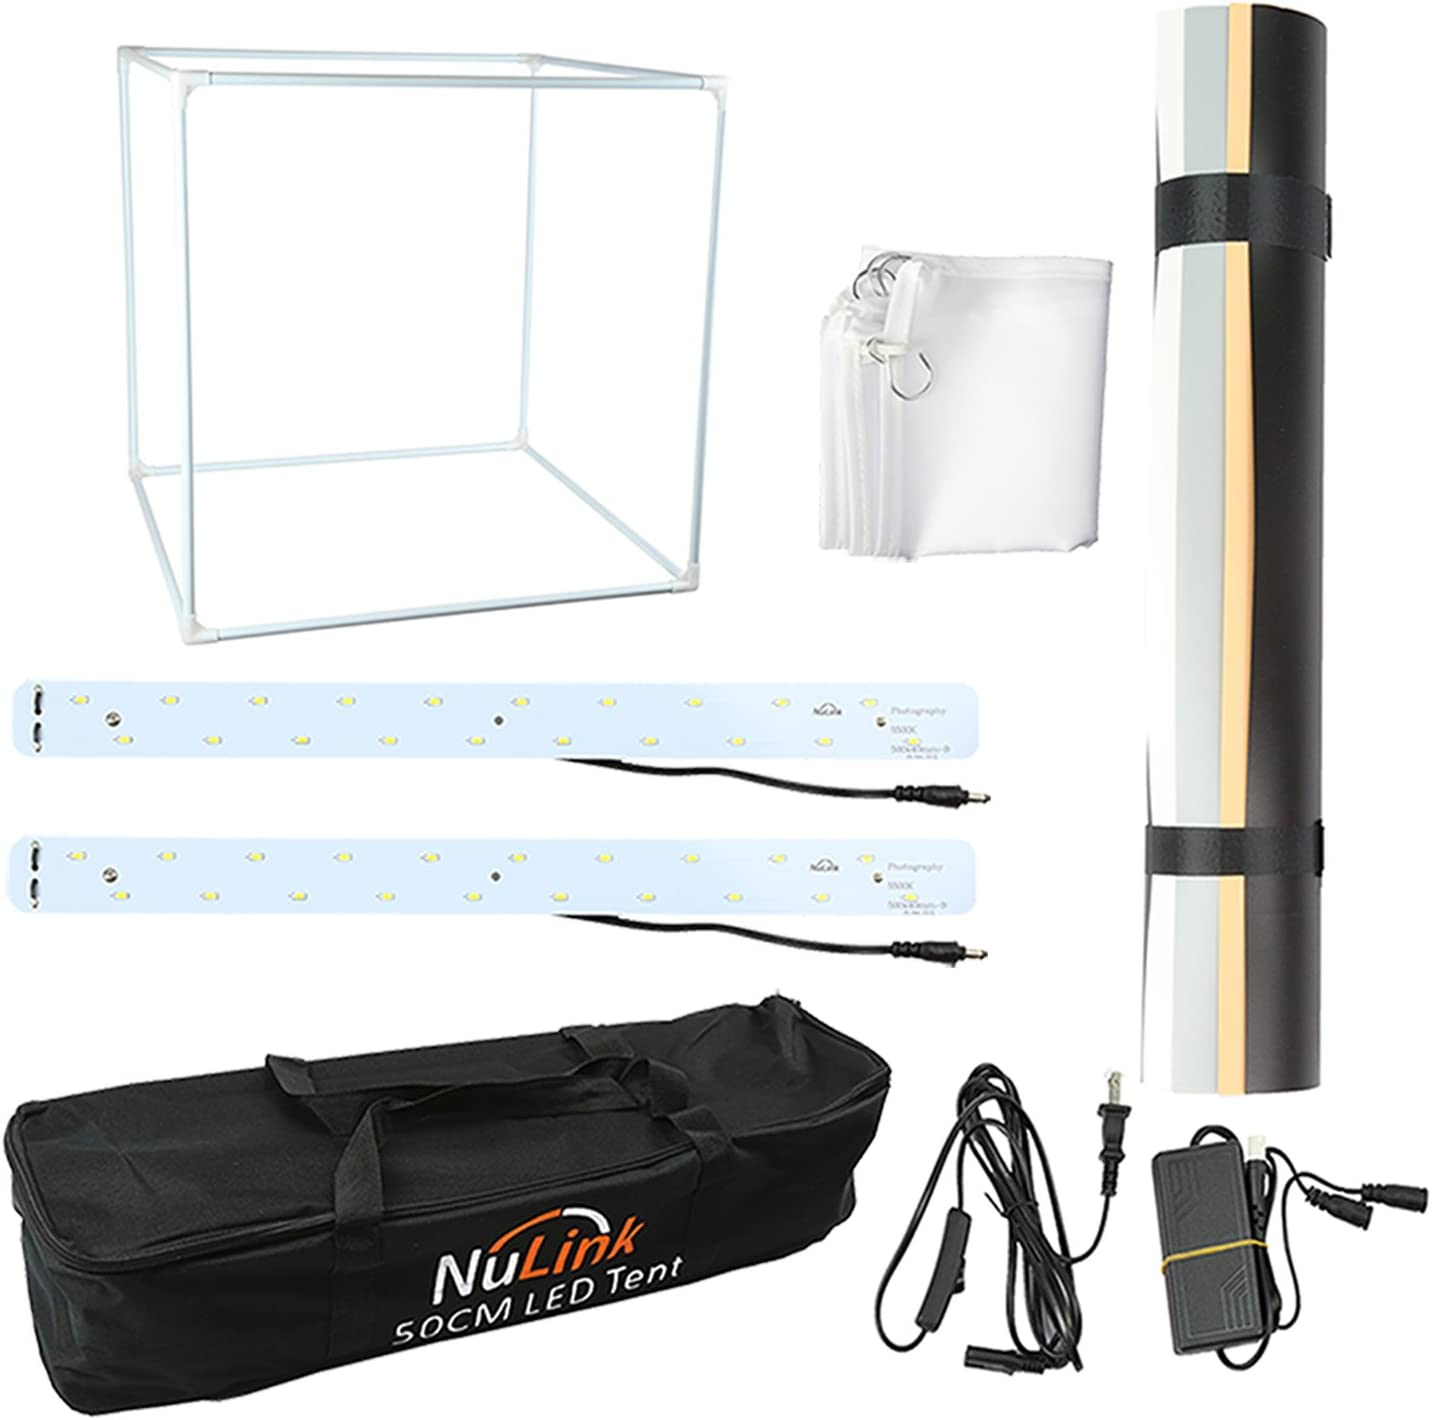 Nulink153; 50cm 20 Photography Photo Studio Shooing Tent Lightning Cube with 2 LED White 5500K Light Strip /& 4 Colors Backdrops